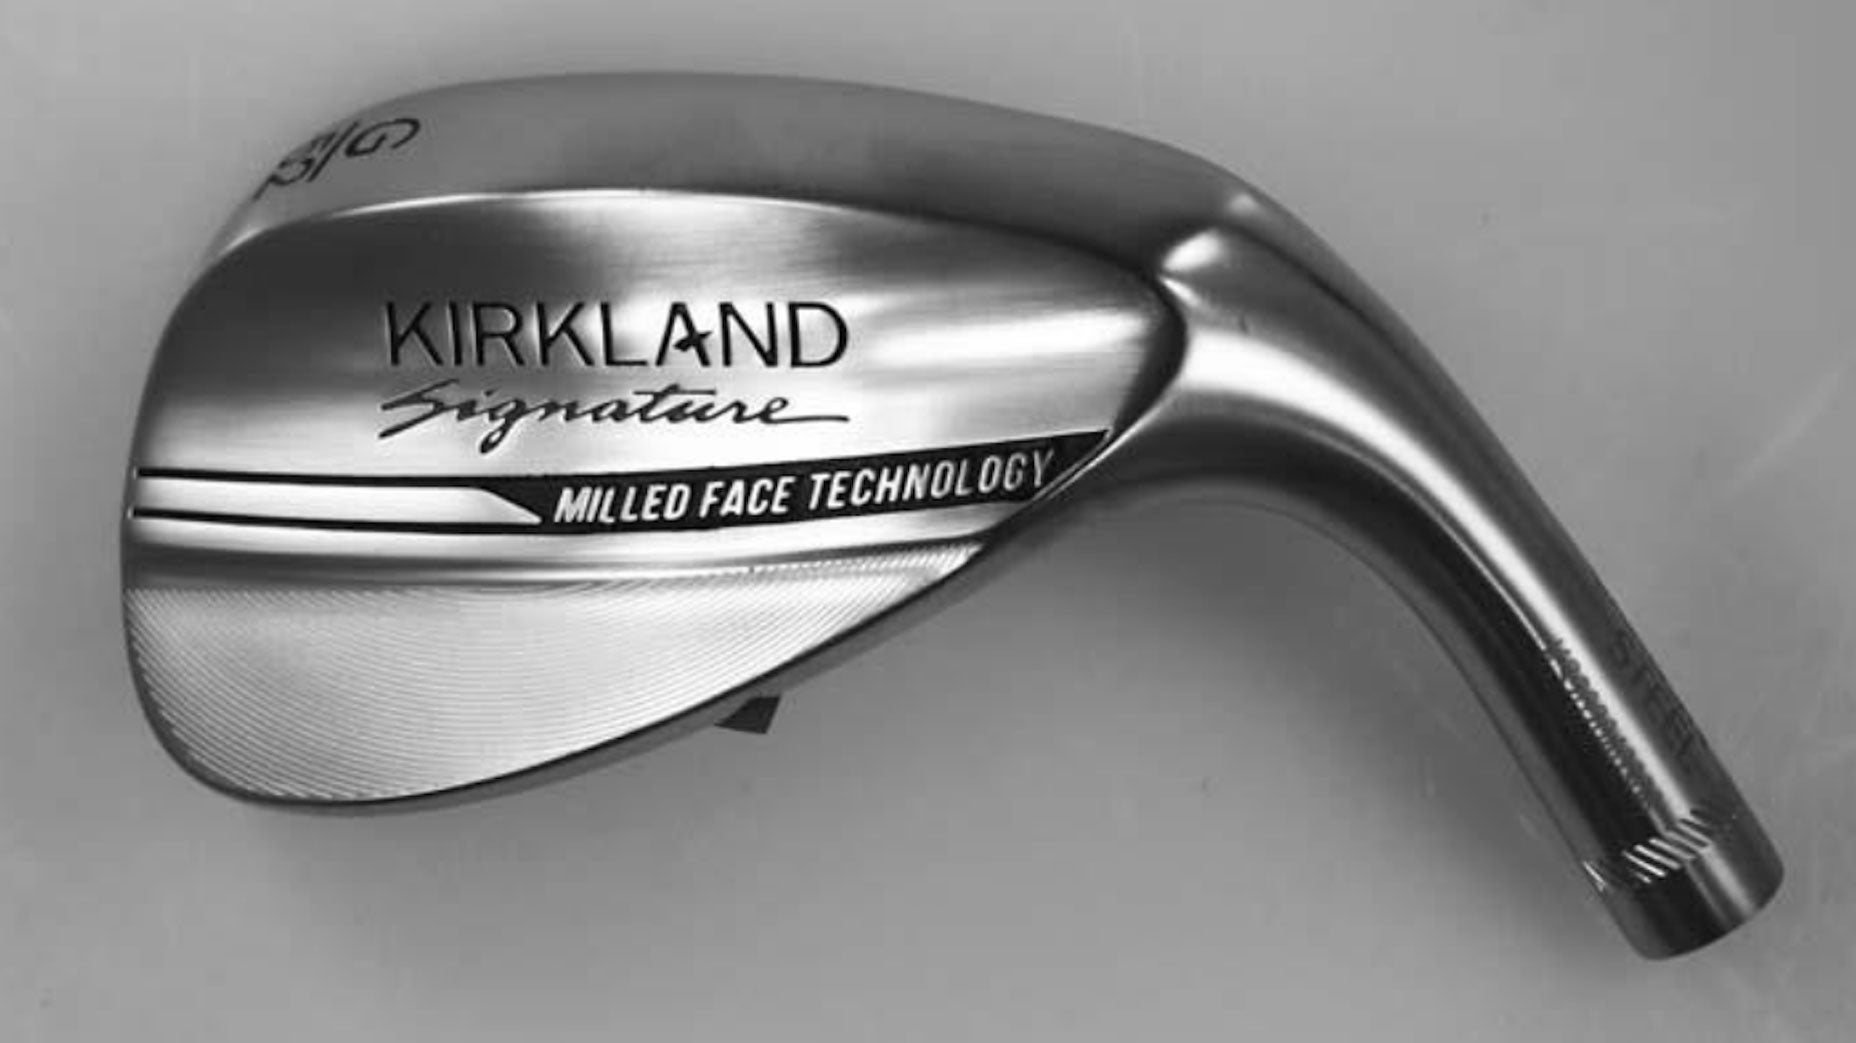 Kirkland Signature wedge